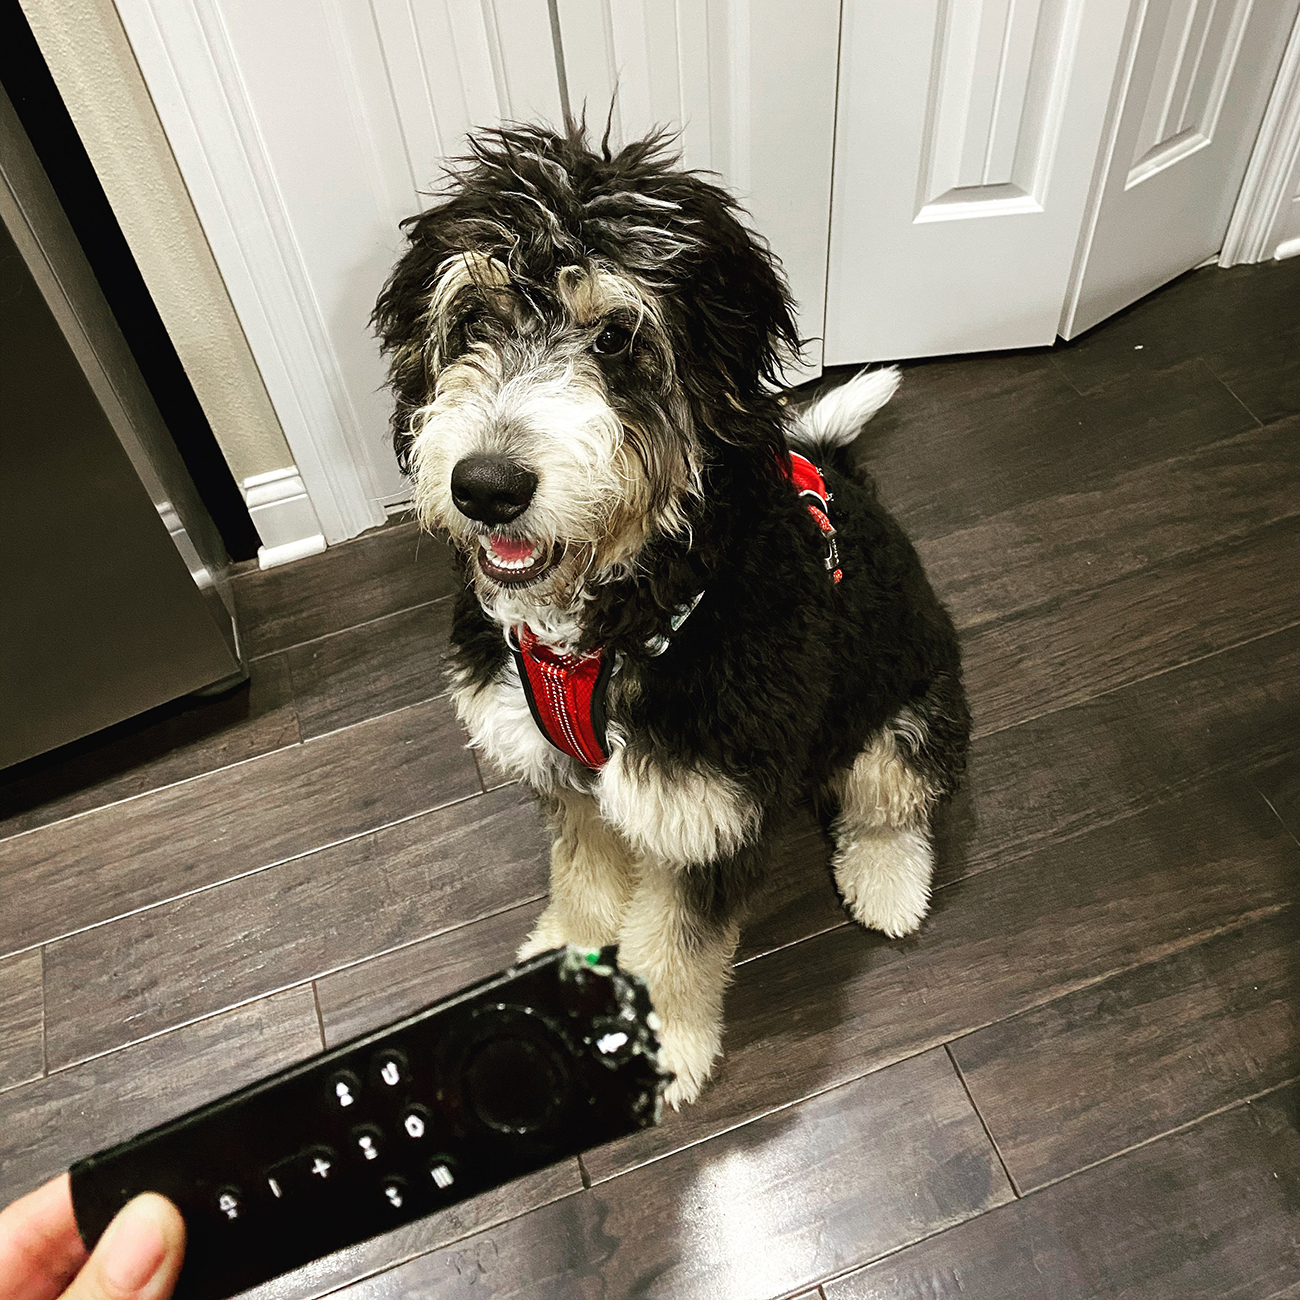 Shaggy dog looks up at owner, who is holding chewed up Amazon Fire remote